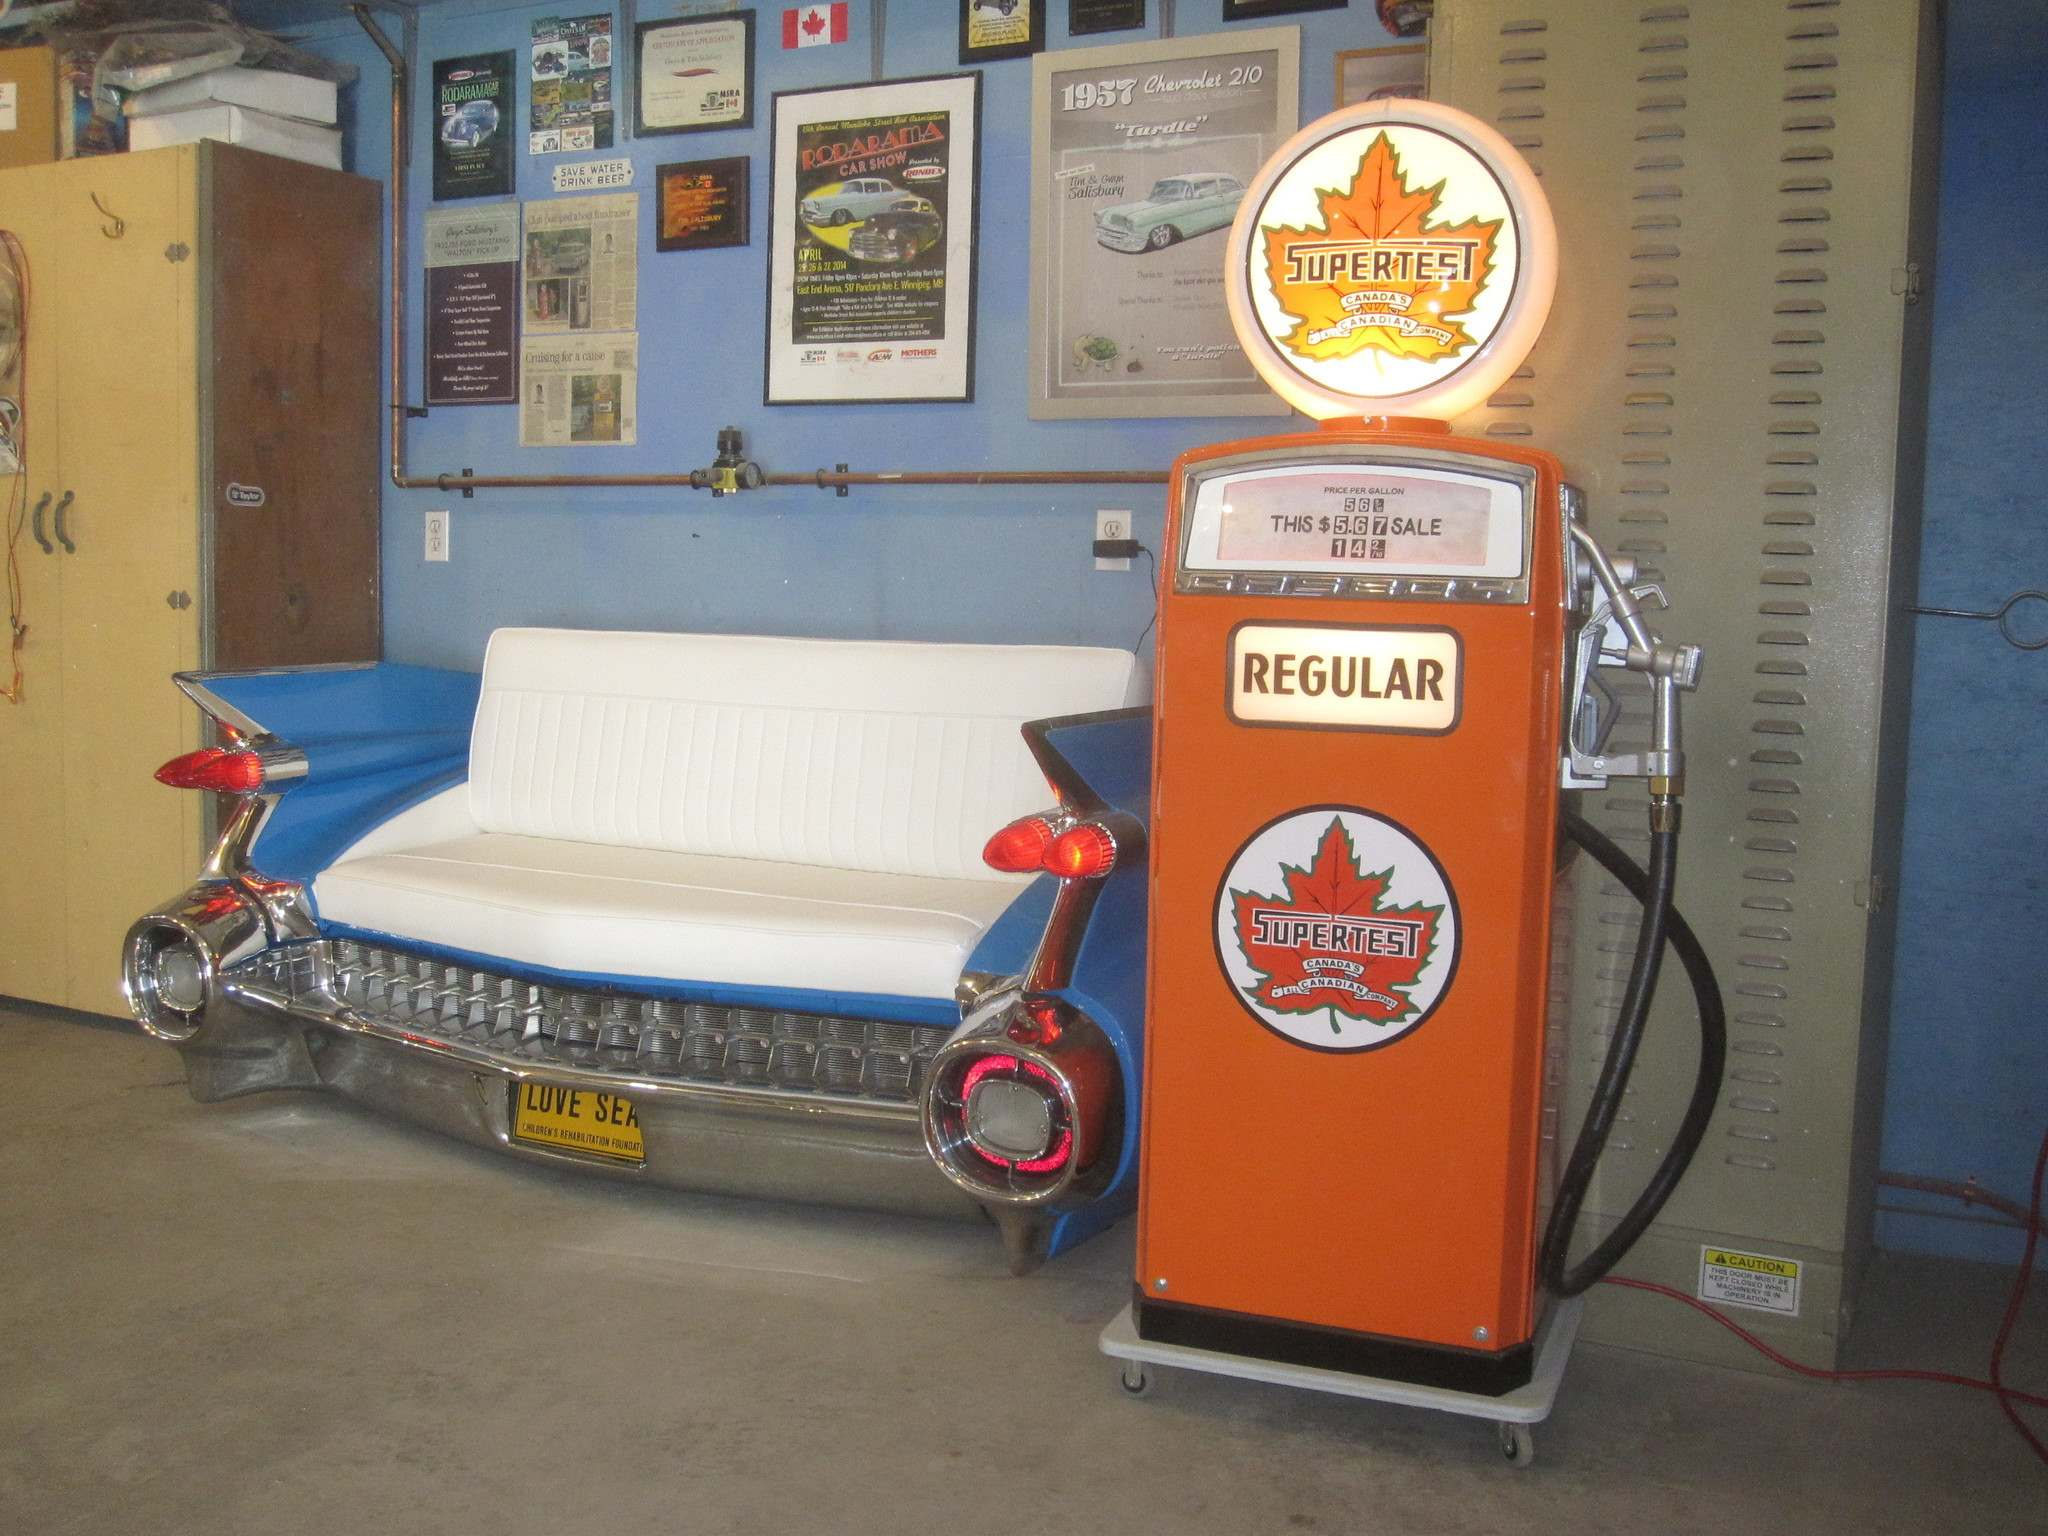 This 1959 Cadillac love seat and vintage gas pump are being raffled off in support of the Children's Rehabillitation Foundation.